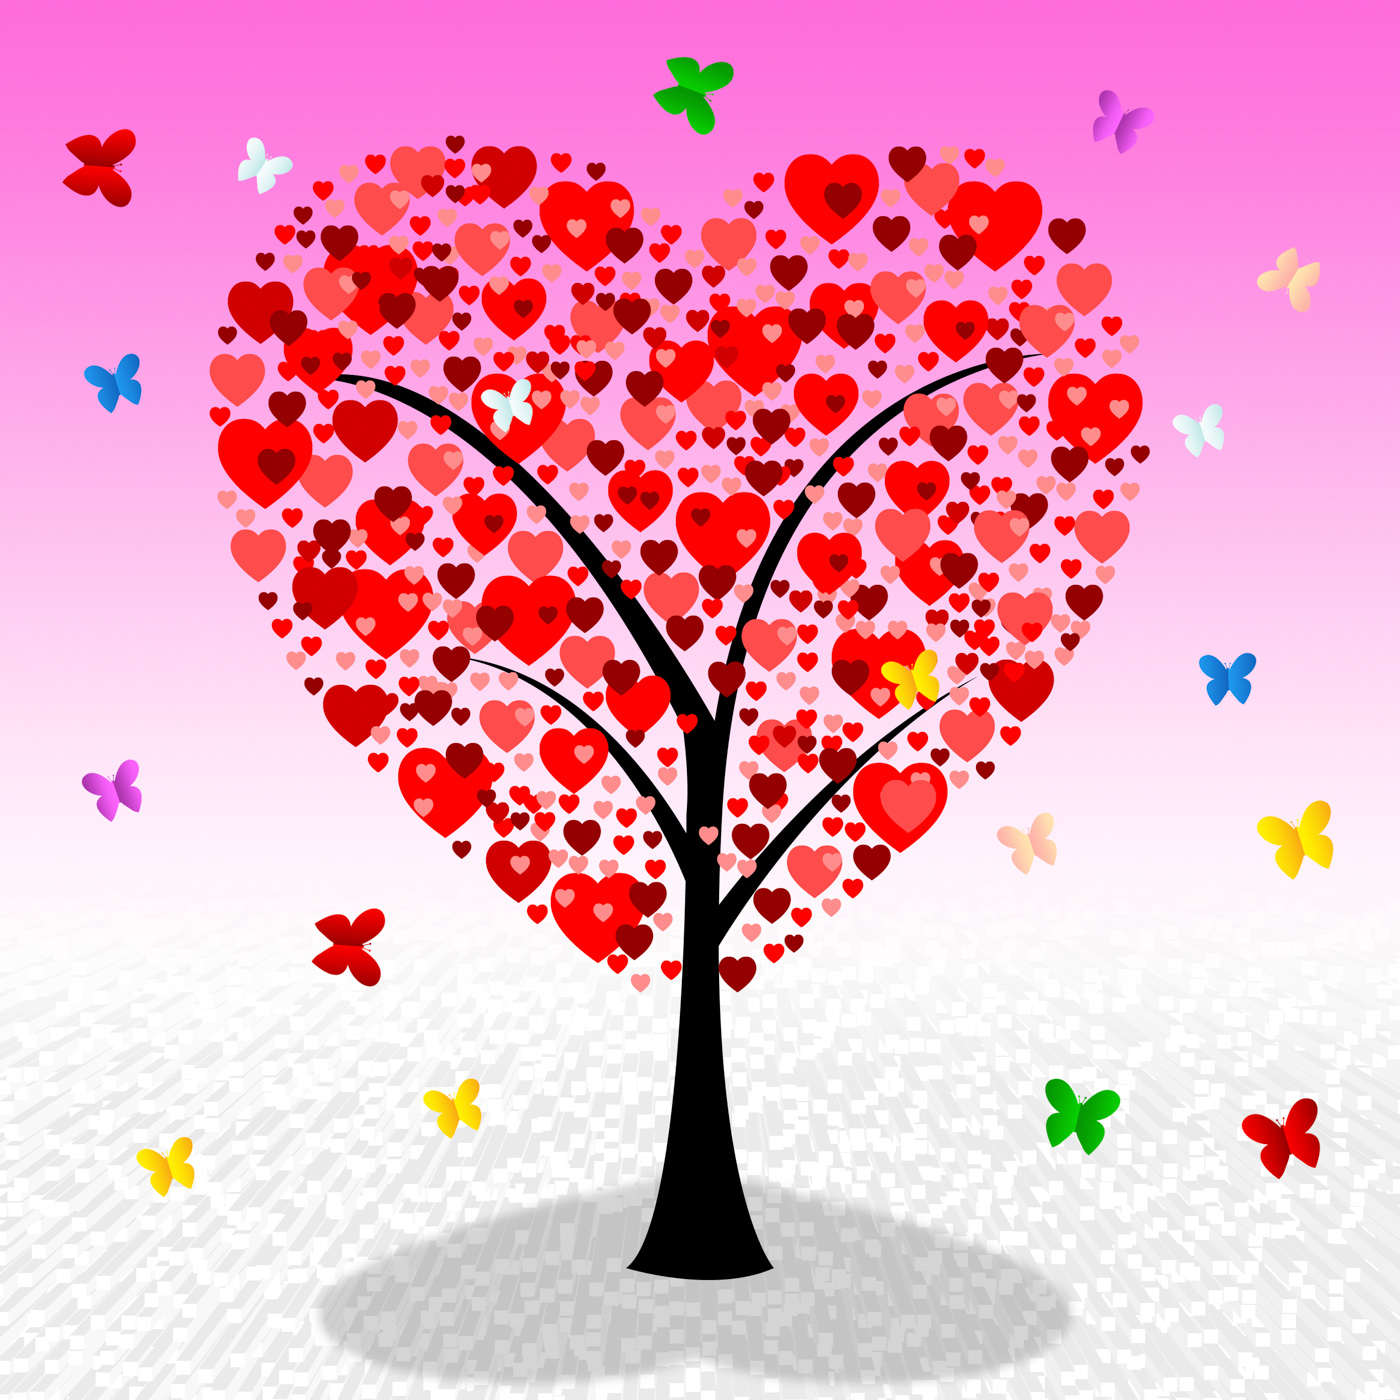 Tree hearts indicates valentines day and affection photo